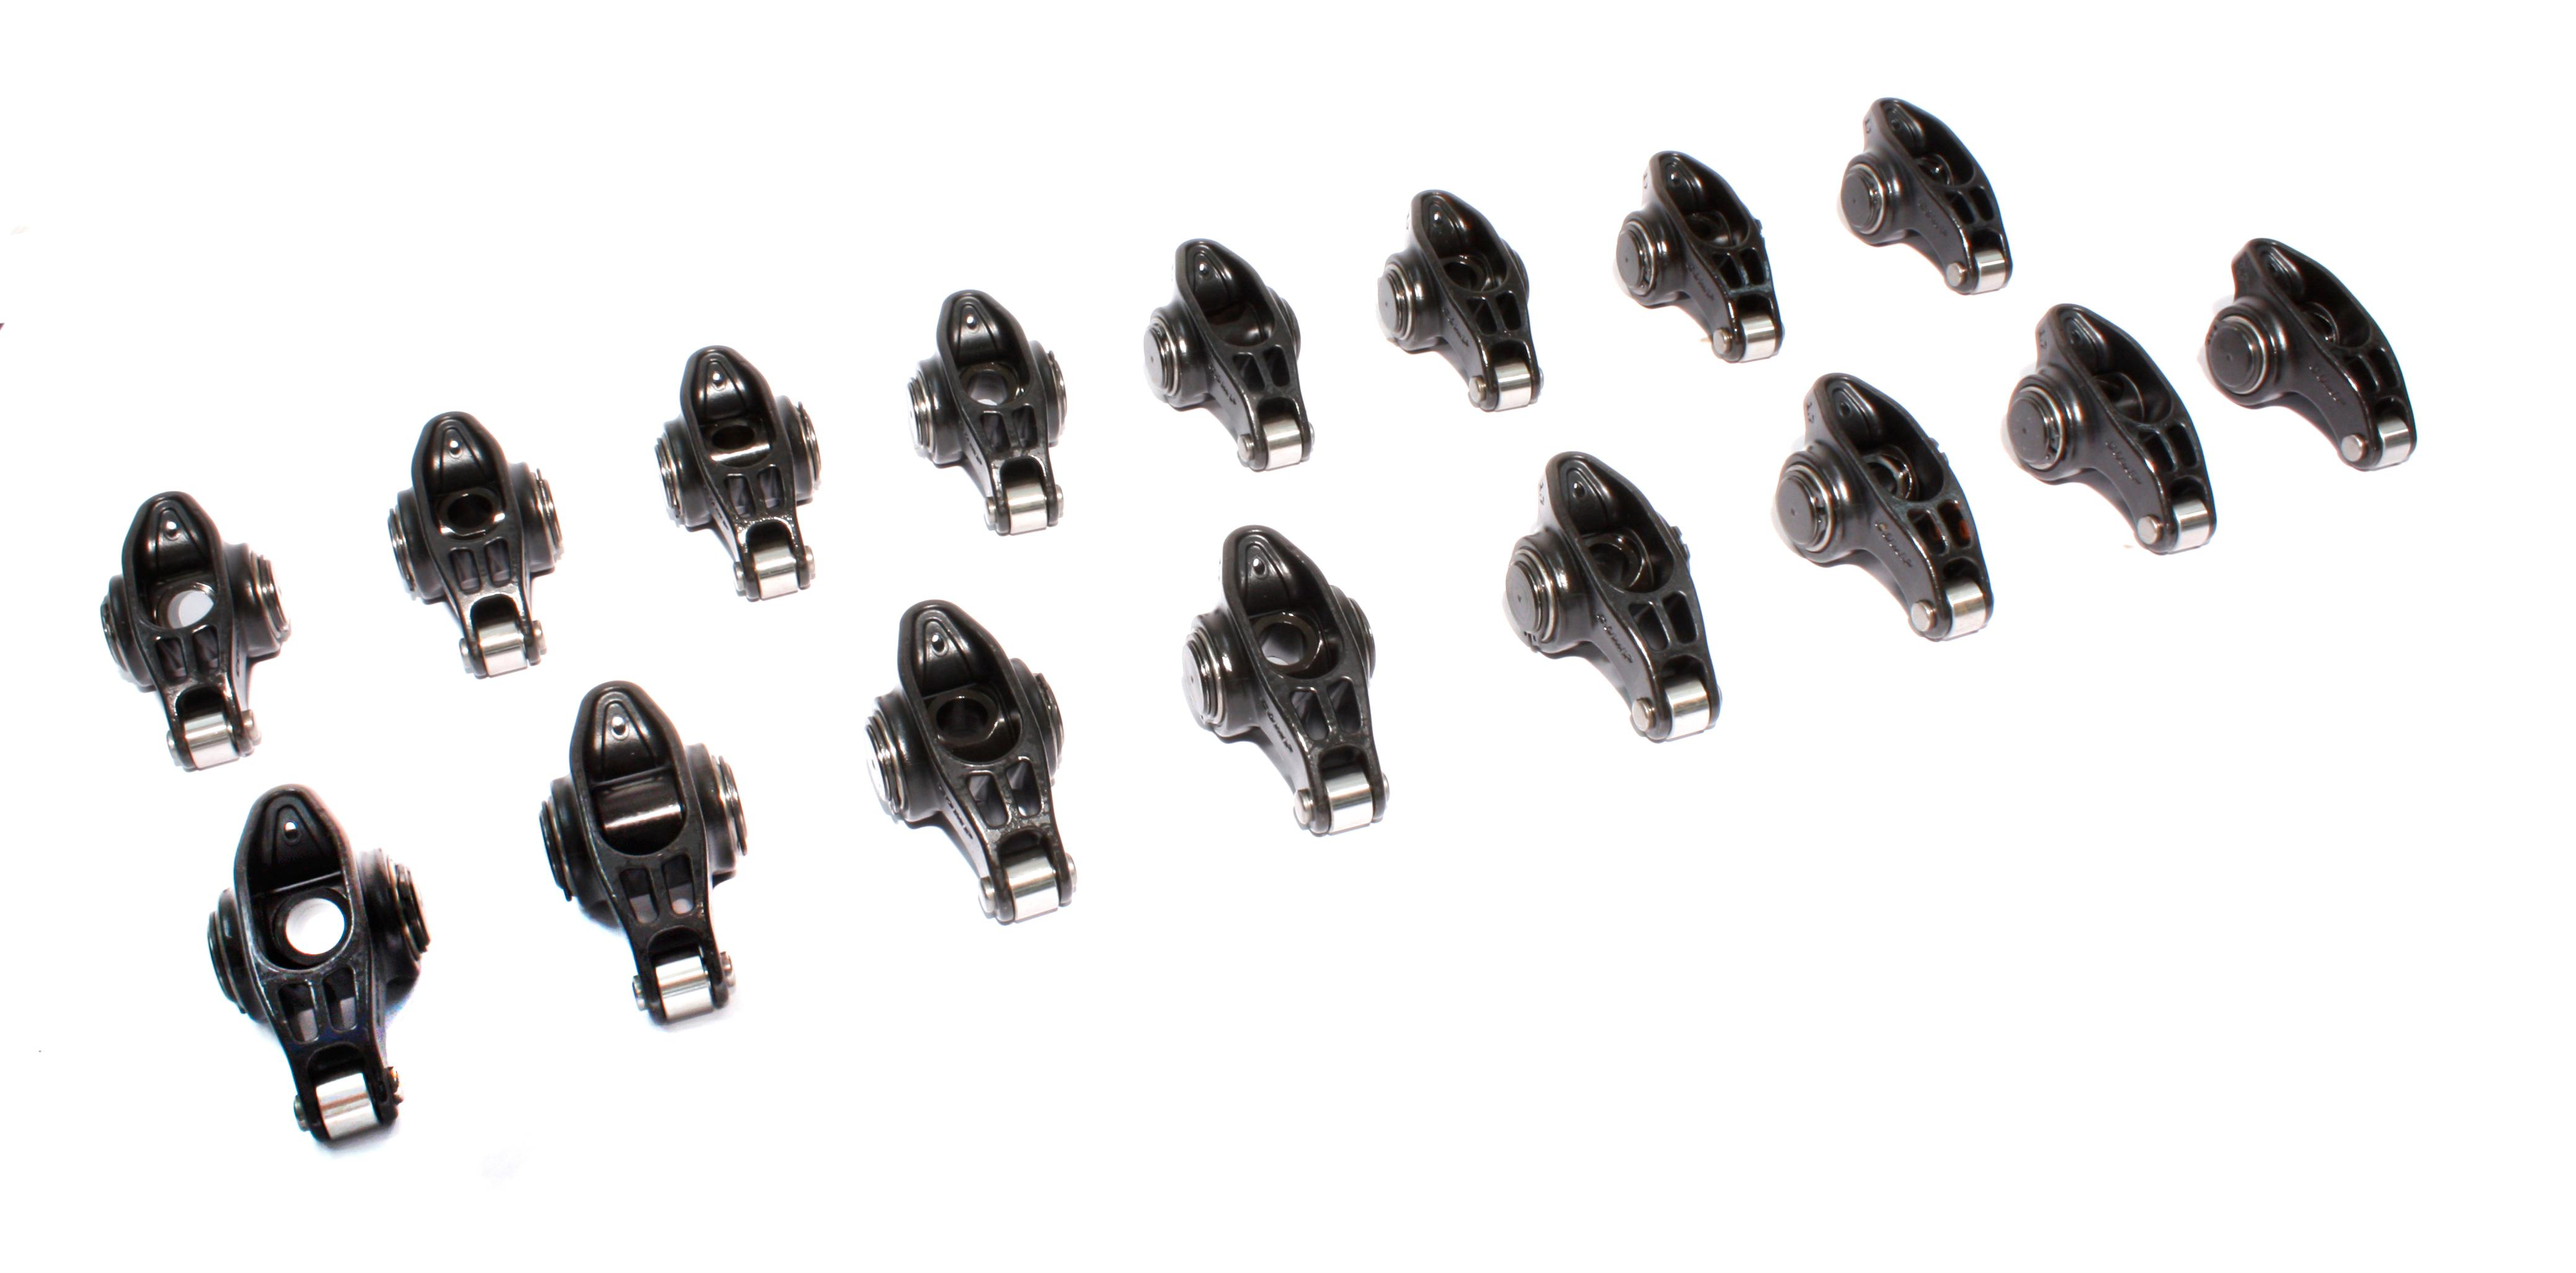 COMP Cams 1806-12 Ultra Pro Magnum XD Roller Rocker Arm with 1.65 Ratio and 7//16 Stud Diameter for Small Block Chevrolet, Set of 12